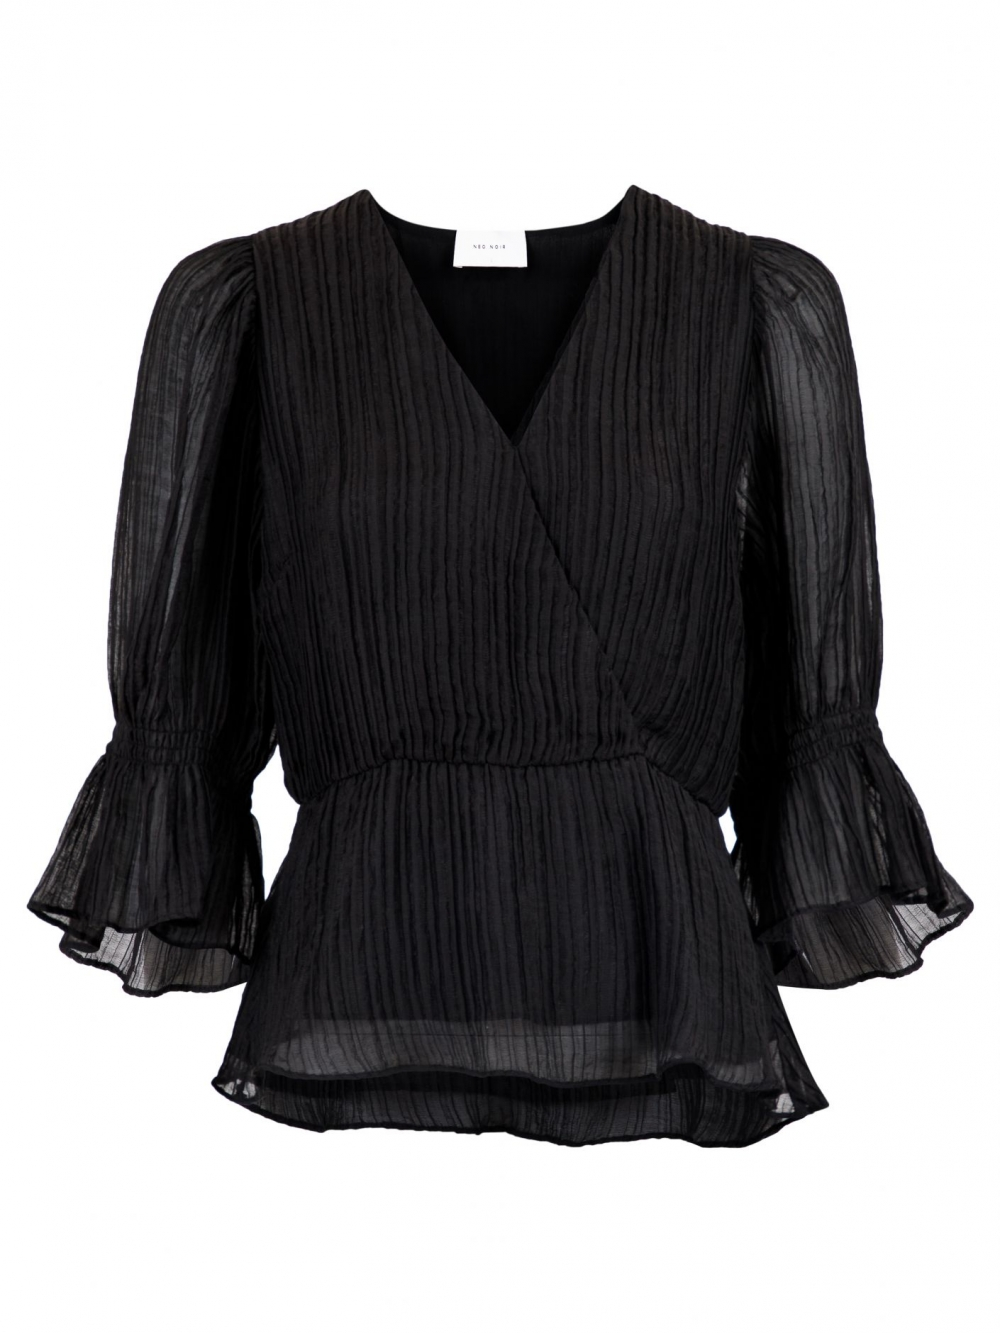 Neo Noir Finga Blouse - Black